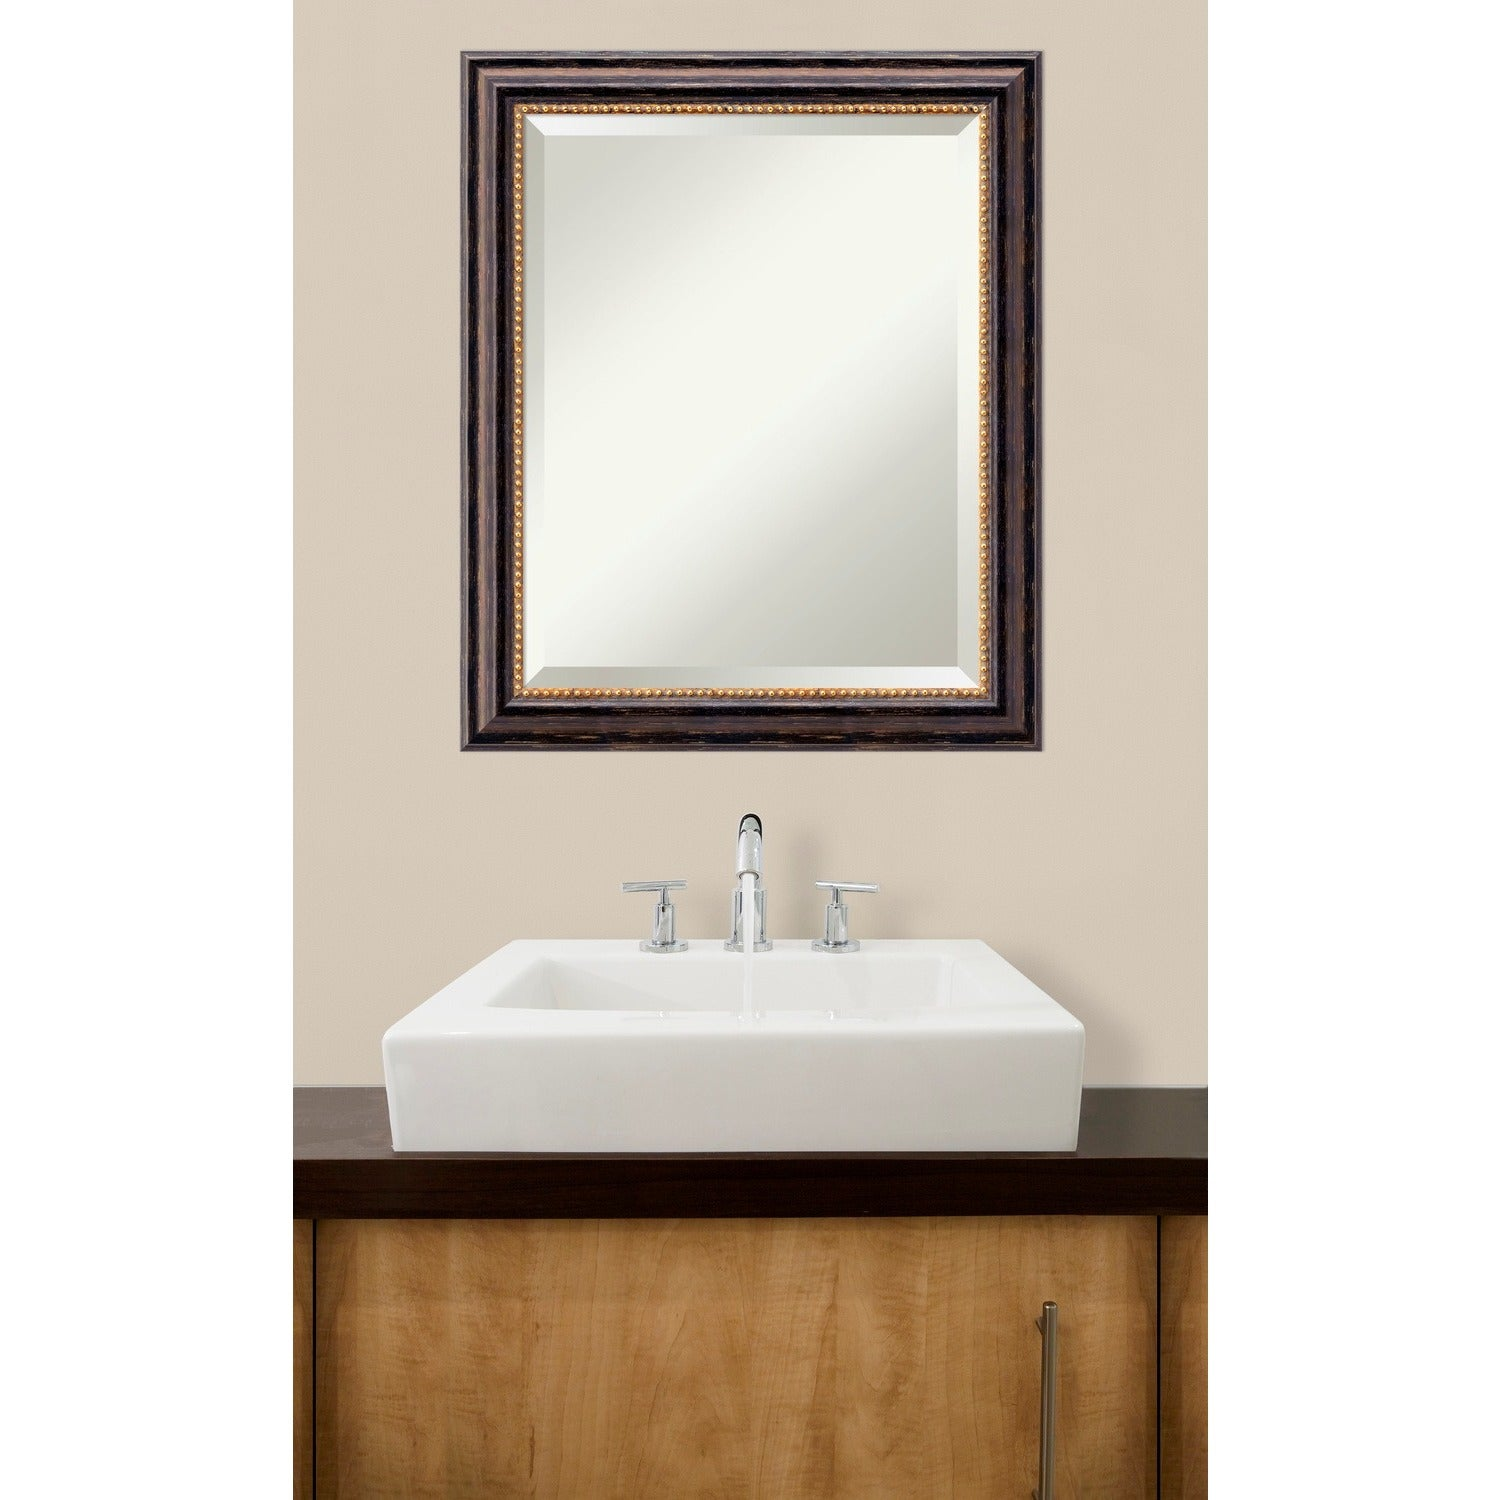 wall mirror tuscan rustic wood black bronze free shipping